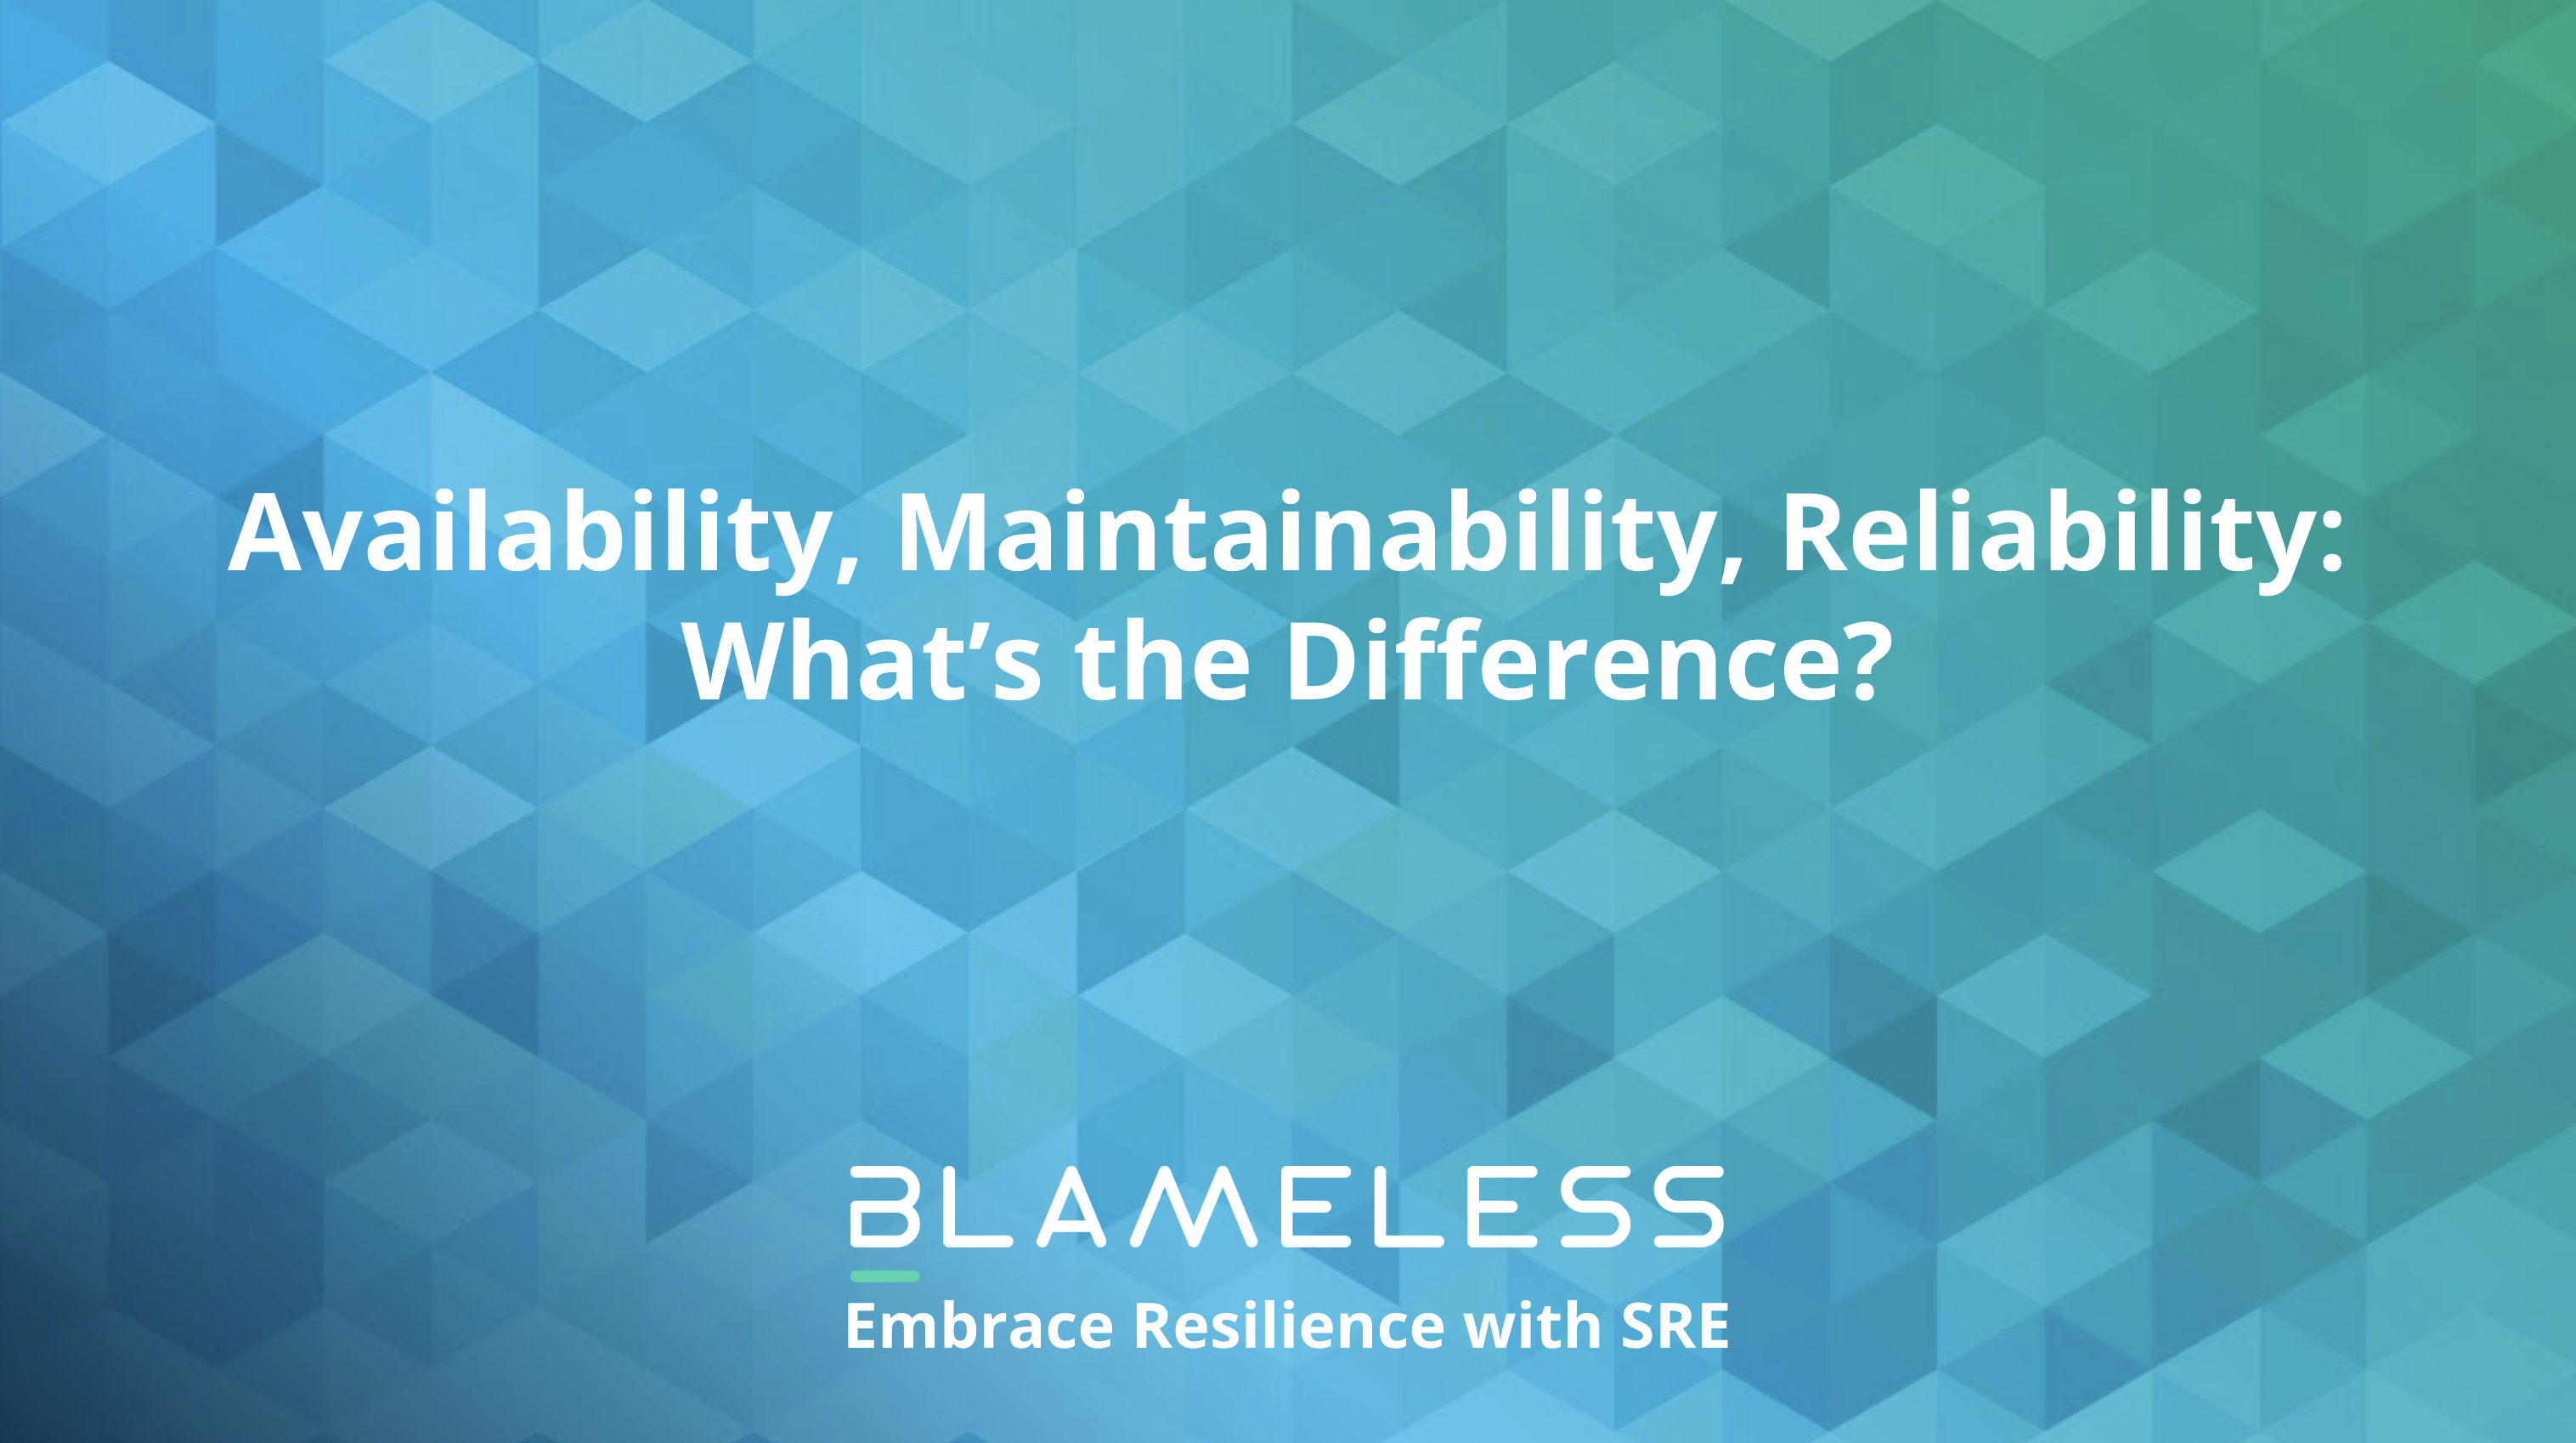 Availability, Maintainability, Reliability: What's the Difference?